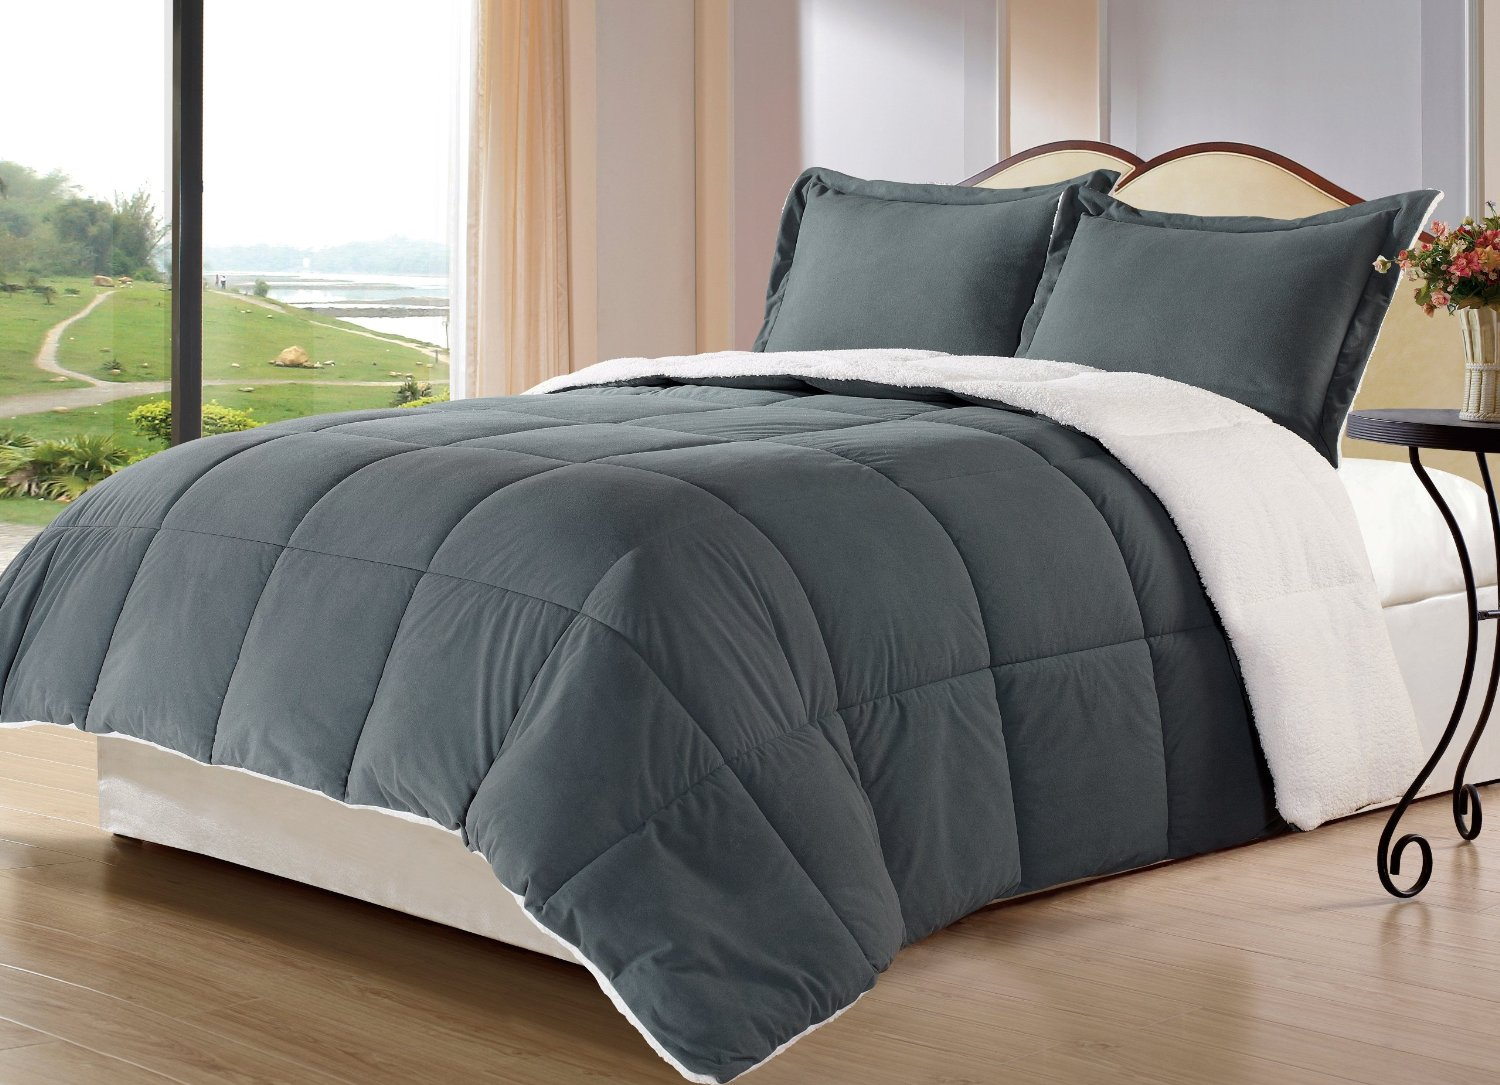 Total Fab Charcoal Grey forter & Bedding Sets